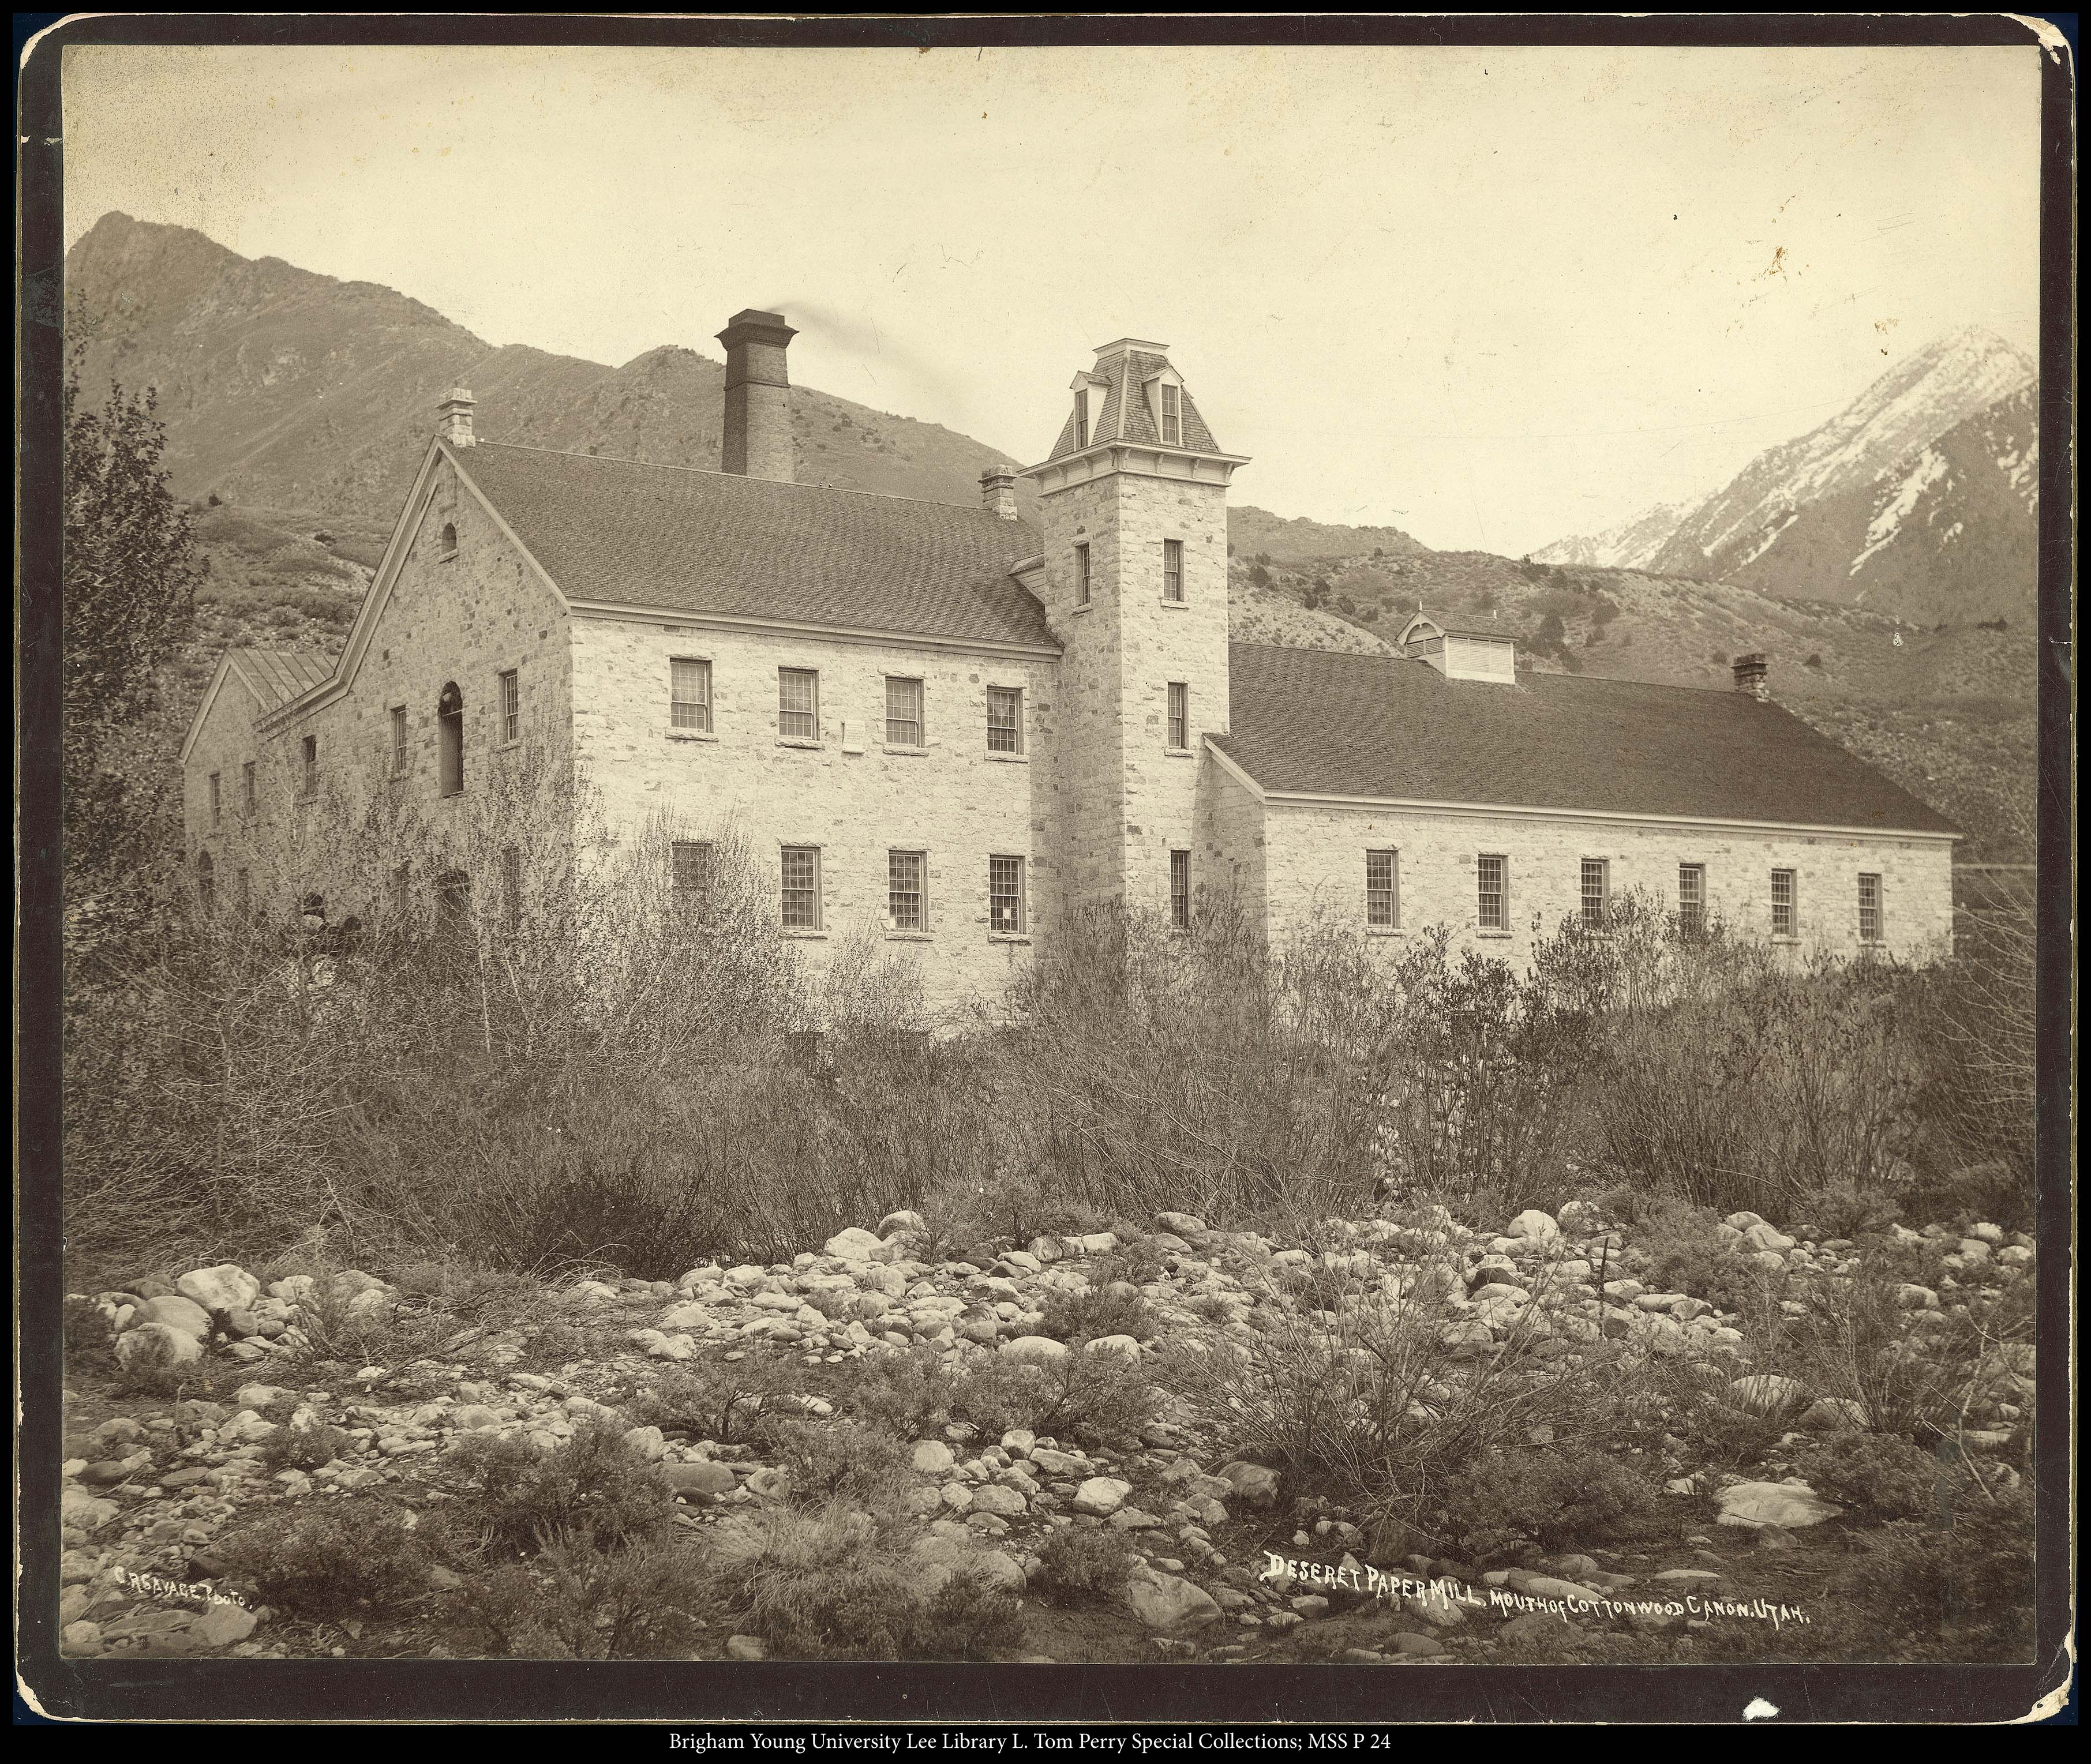 File:Deseret Paper Mill, Mouth Of Cottonwood Canon Utah. C